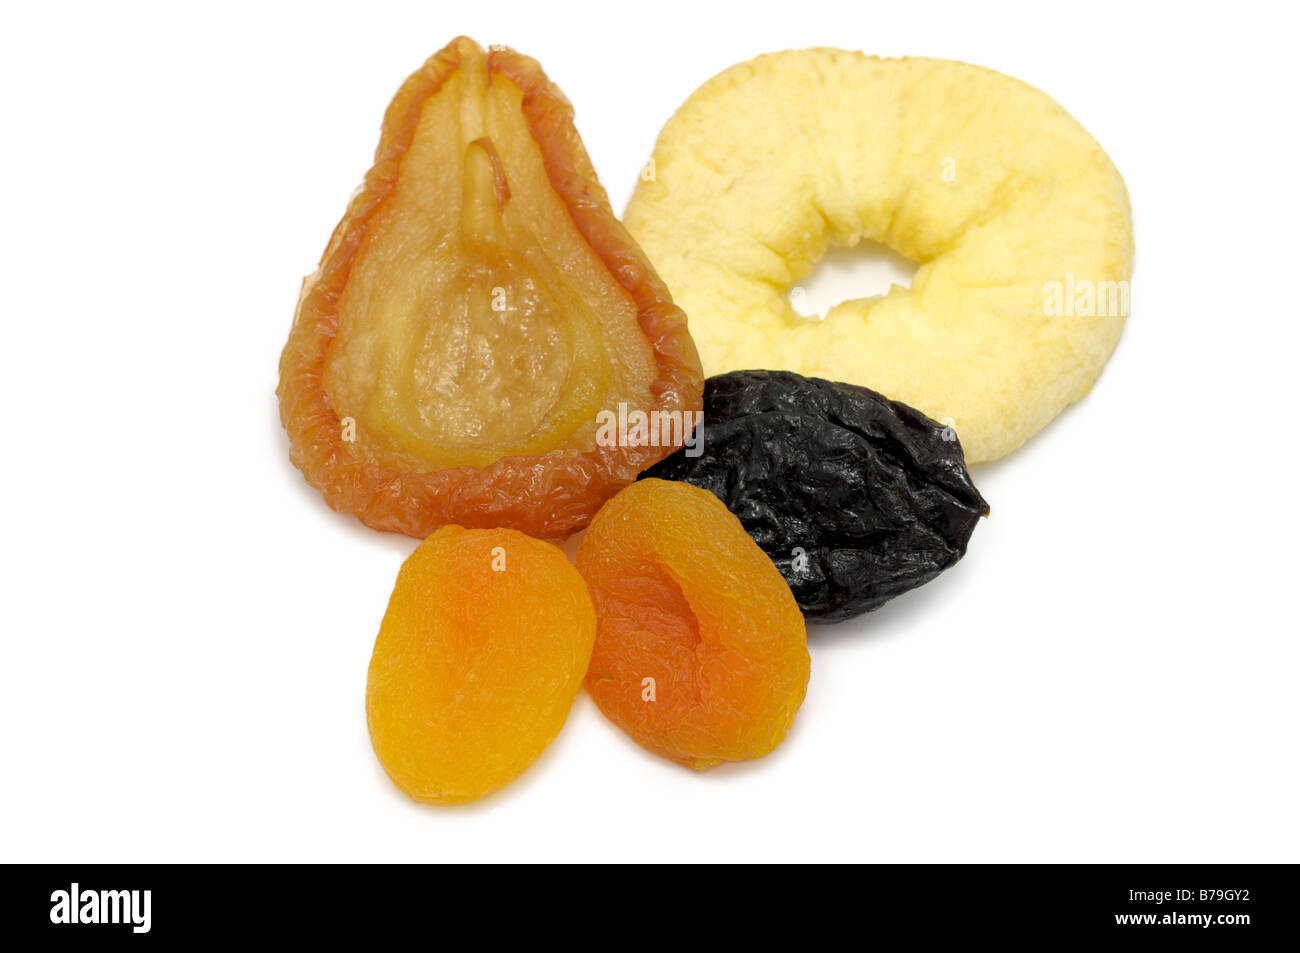 Mixed dried fruit, Pear, Apple Ring, Prune, Apricots - Stock Image